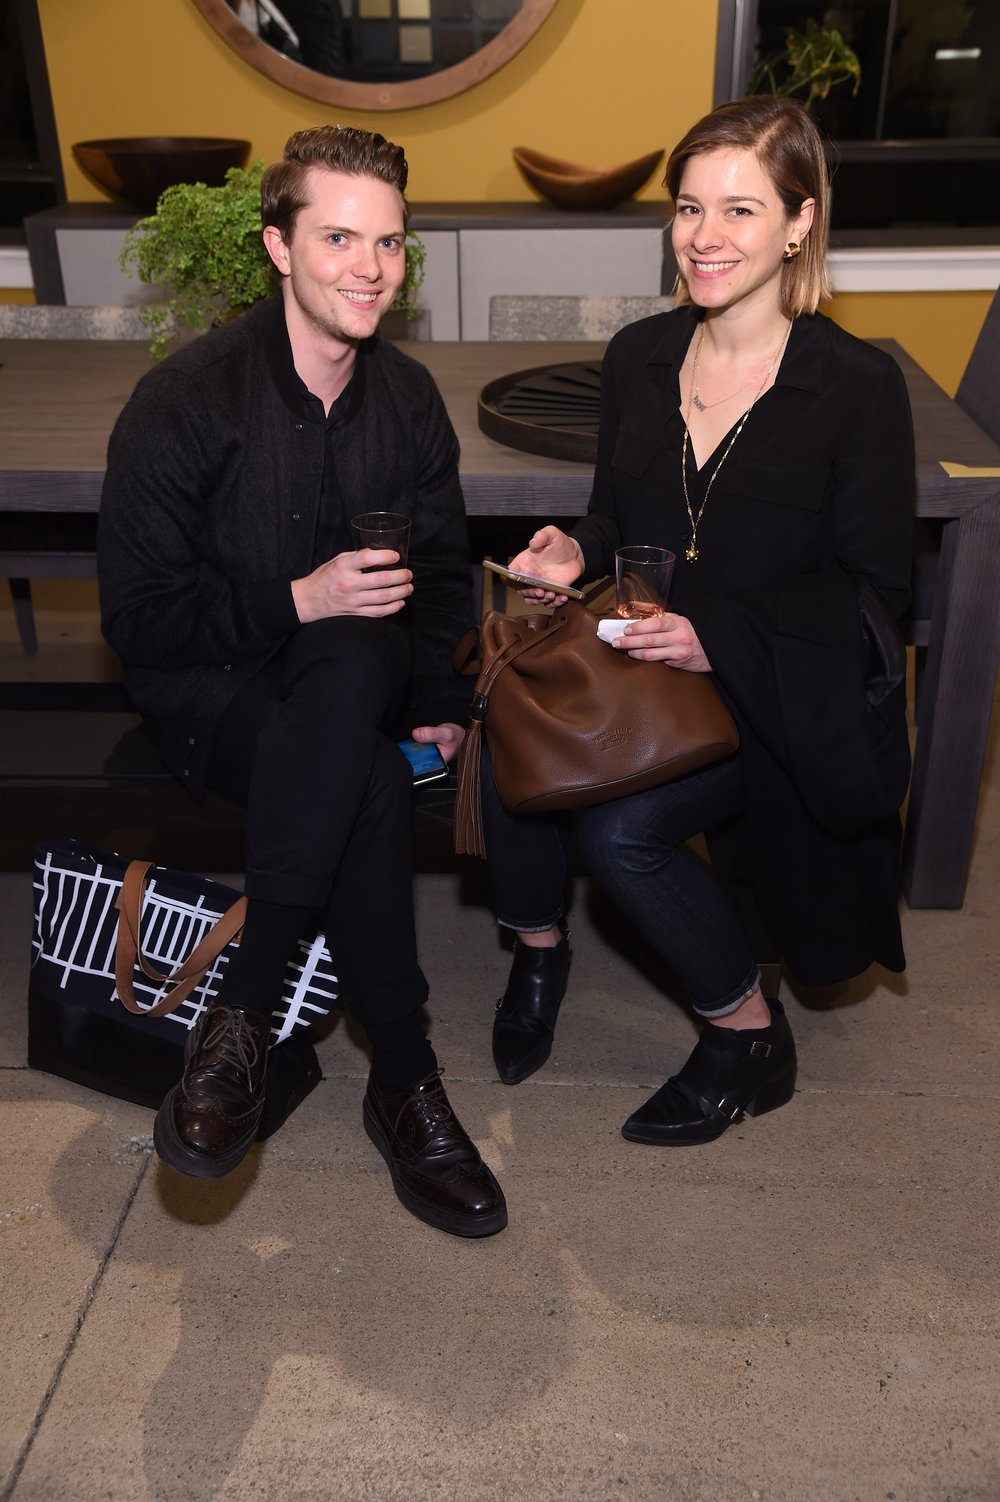 design-on-a-dime-nyc-2017-kick-off-party_33235151861_o.jpg